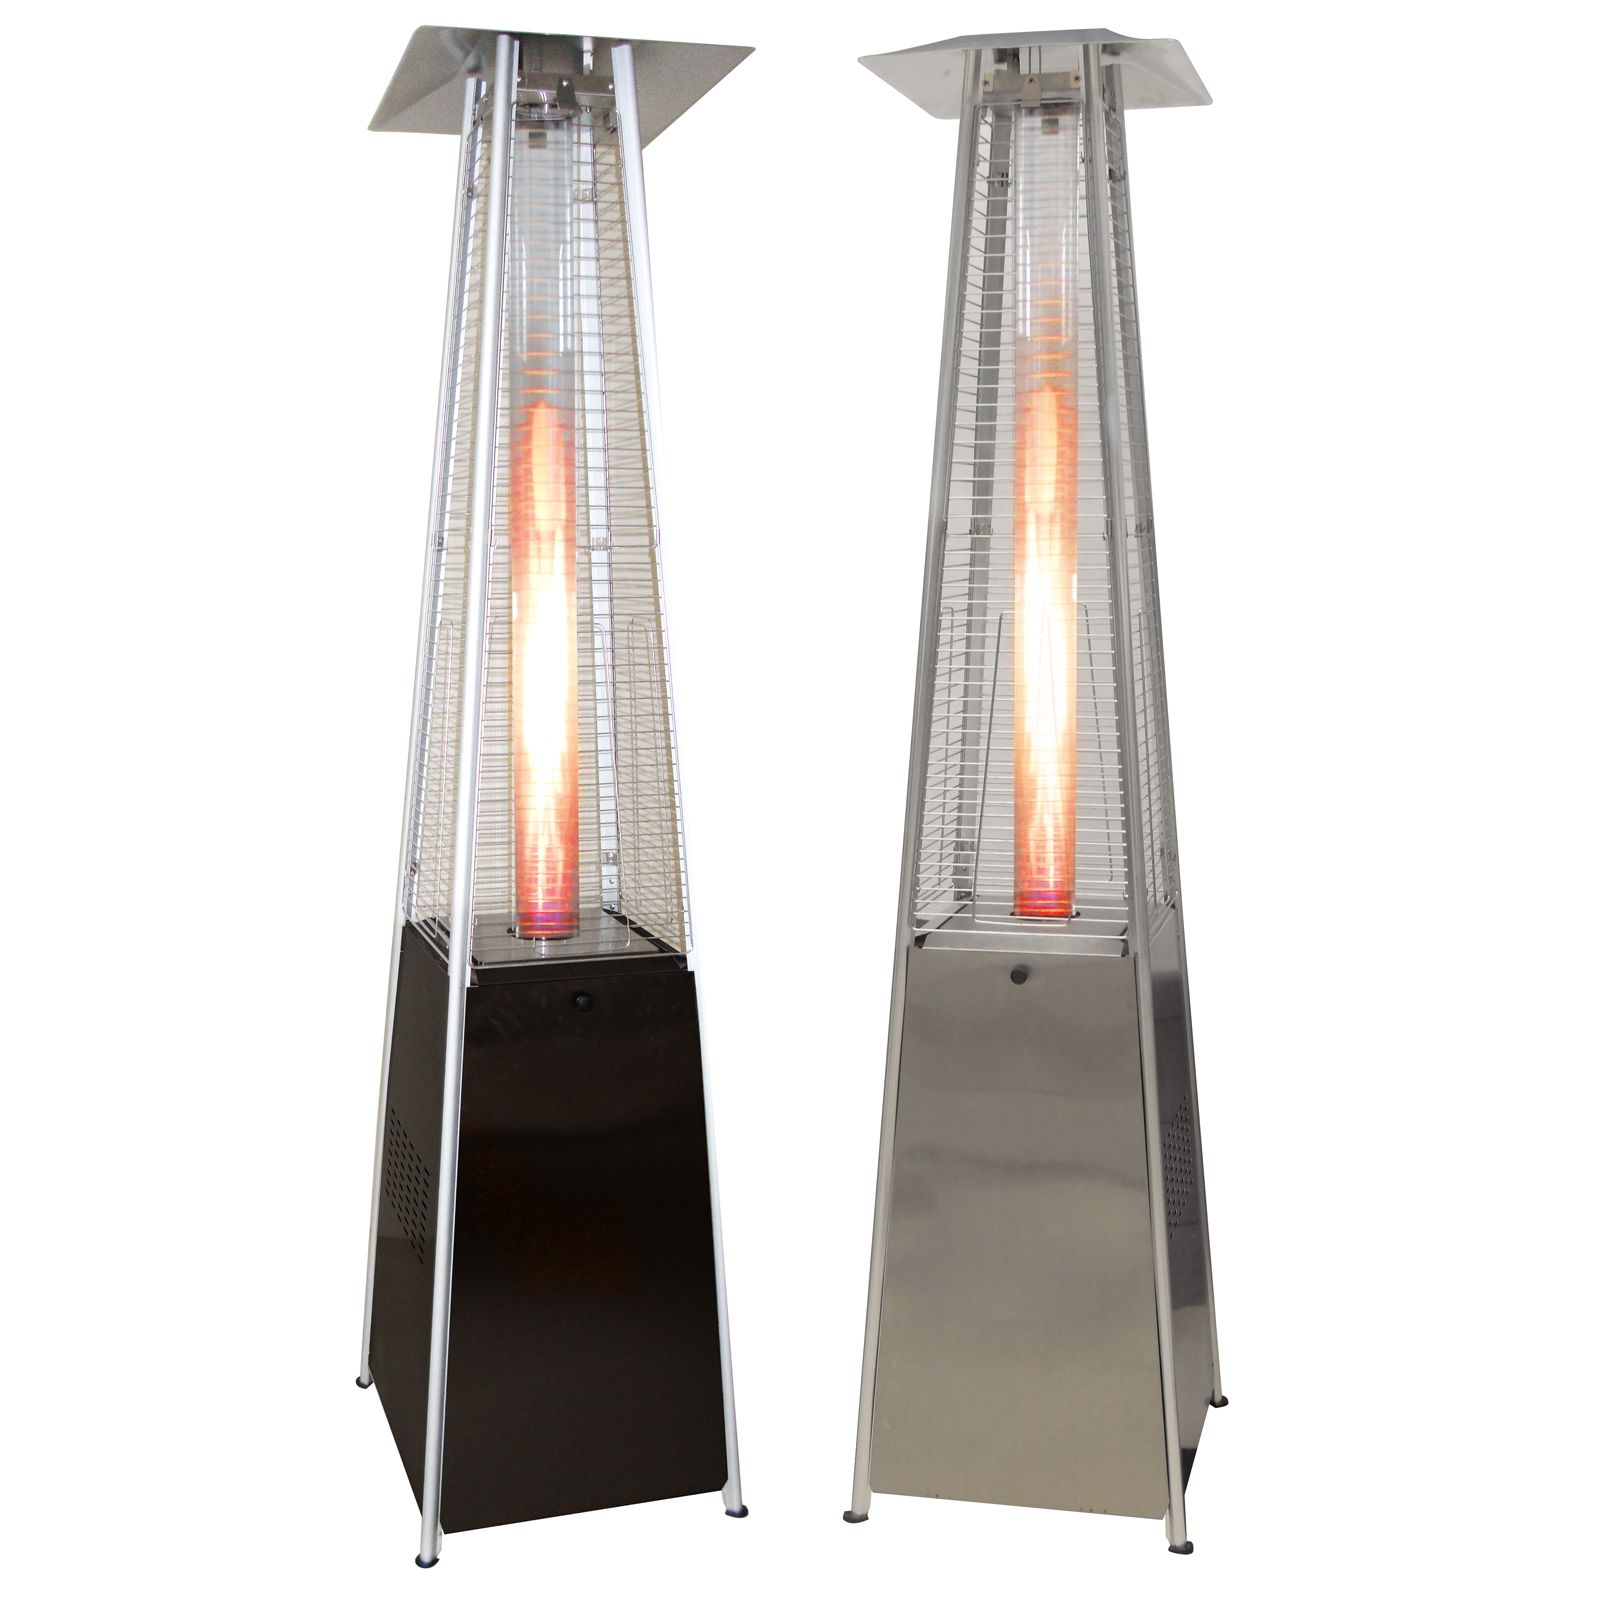 tall heater steel outdoor gs patio grade commercial heaters image stainless ss